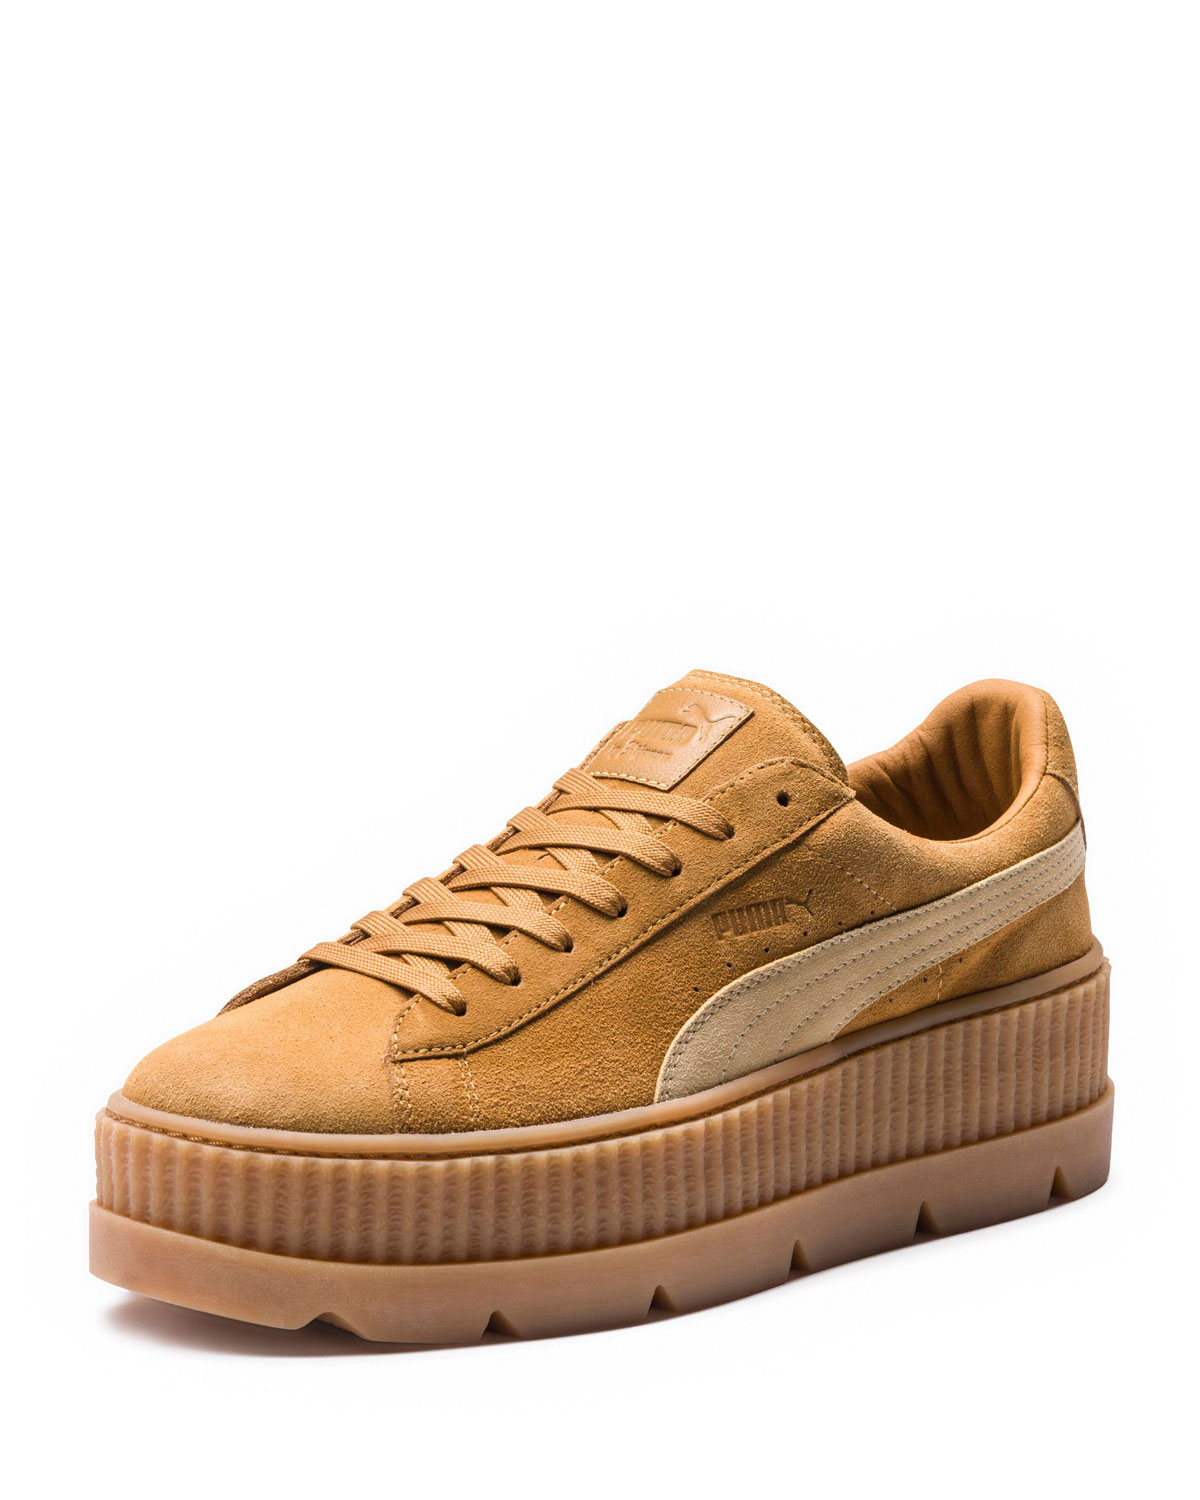 09048fdd2a0a Puma Low-Top Suede Cleated Creeper Sneaker